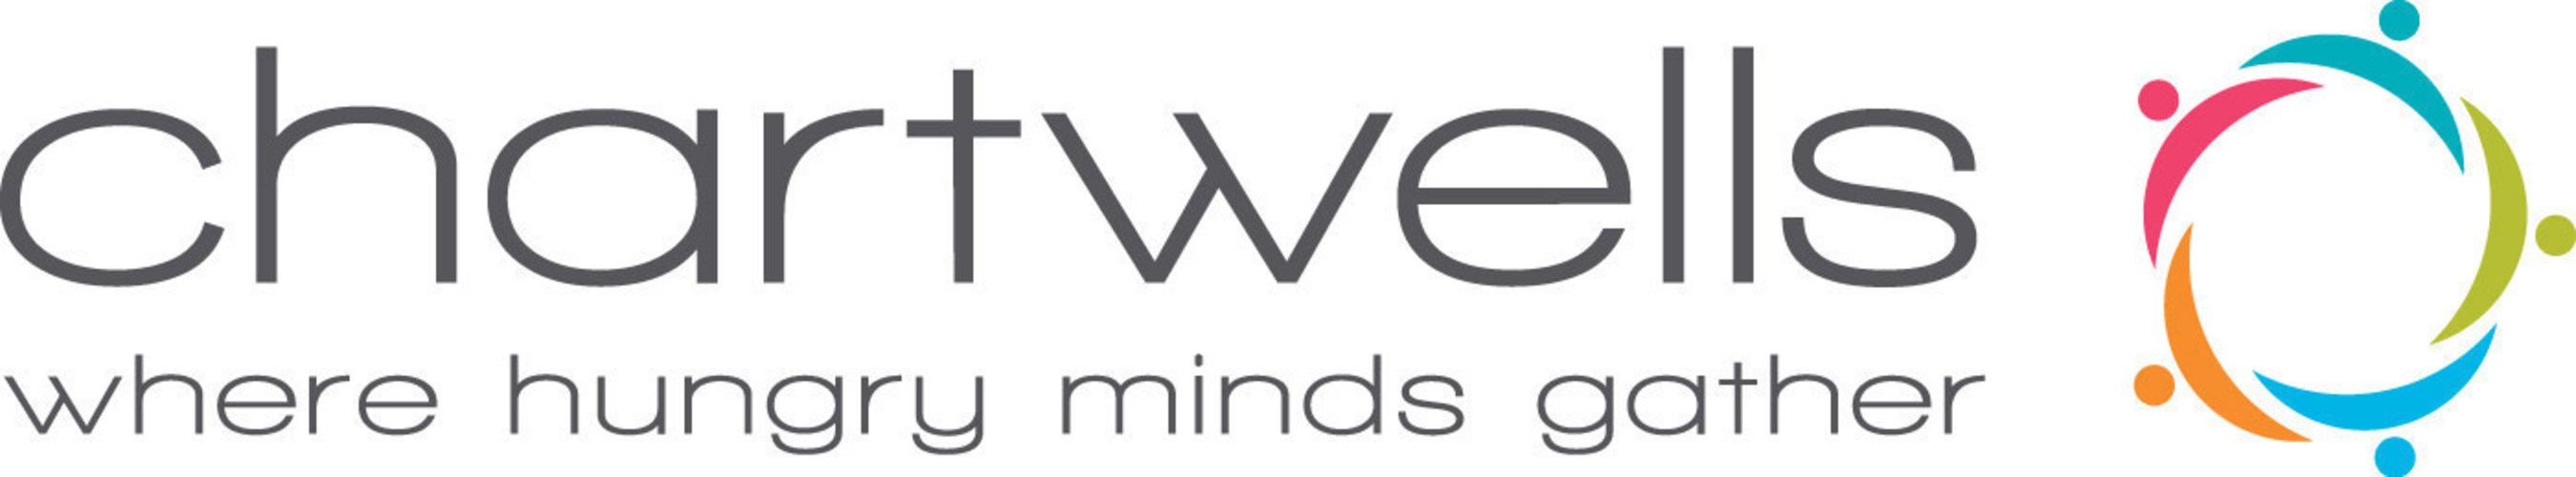 Chartwells Higher Education logo